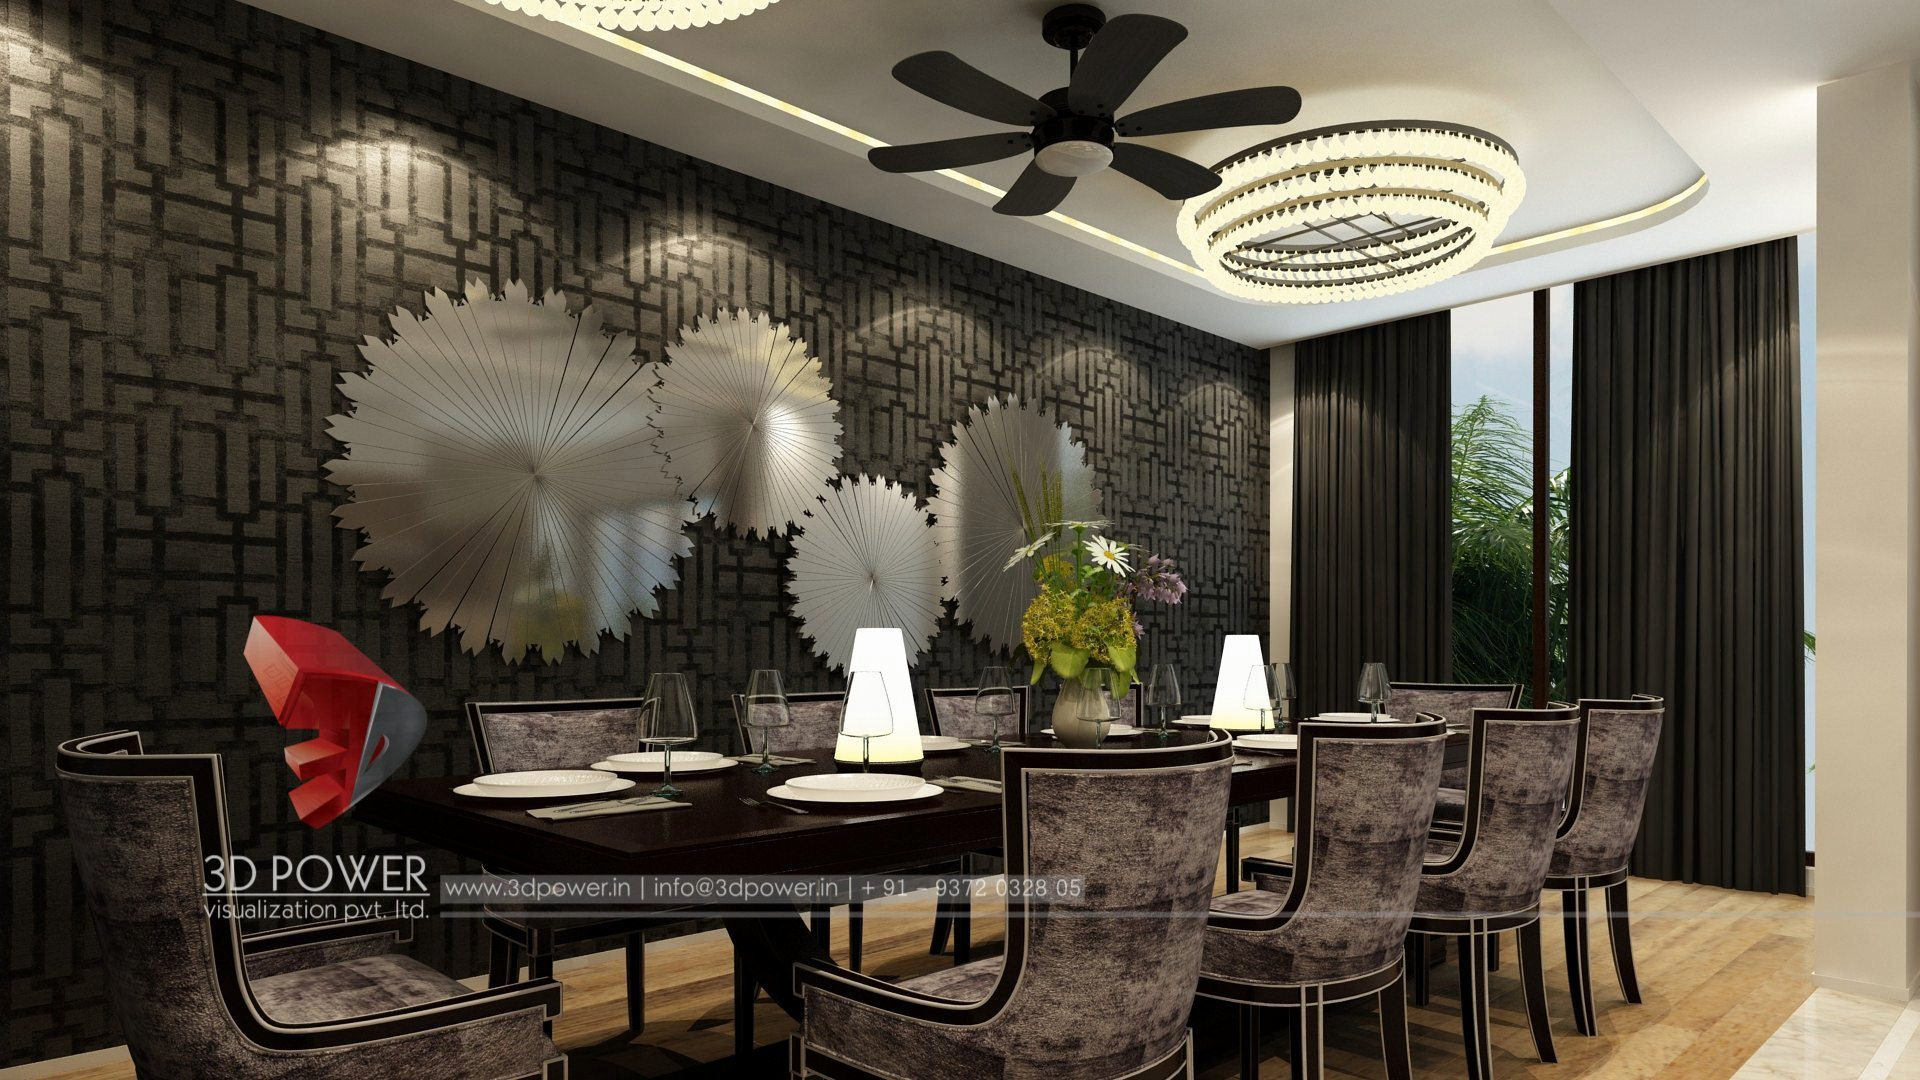 Home Interior Design Dining Room 3d Interior Design And Rendering Services Bungalow And Home